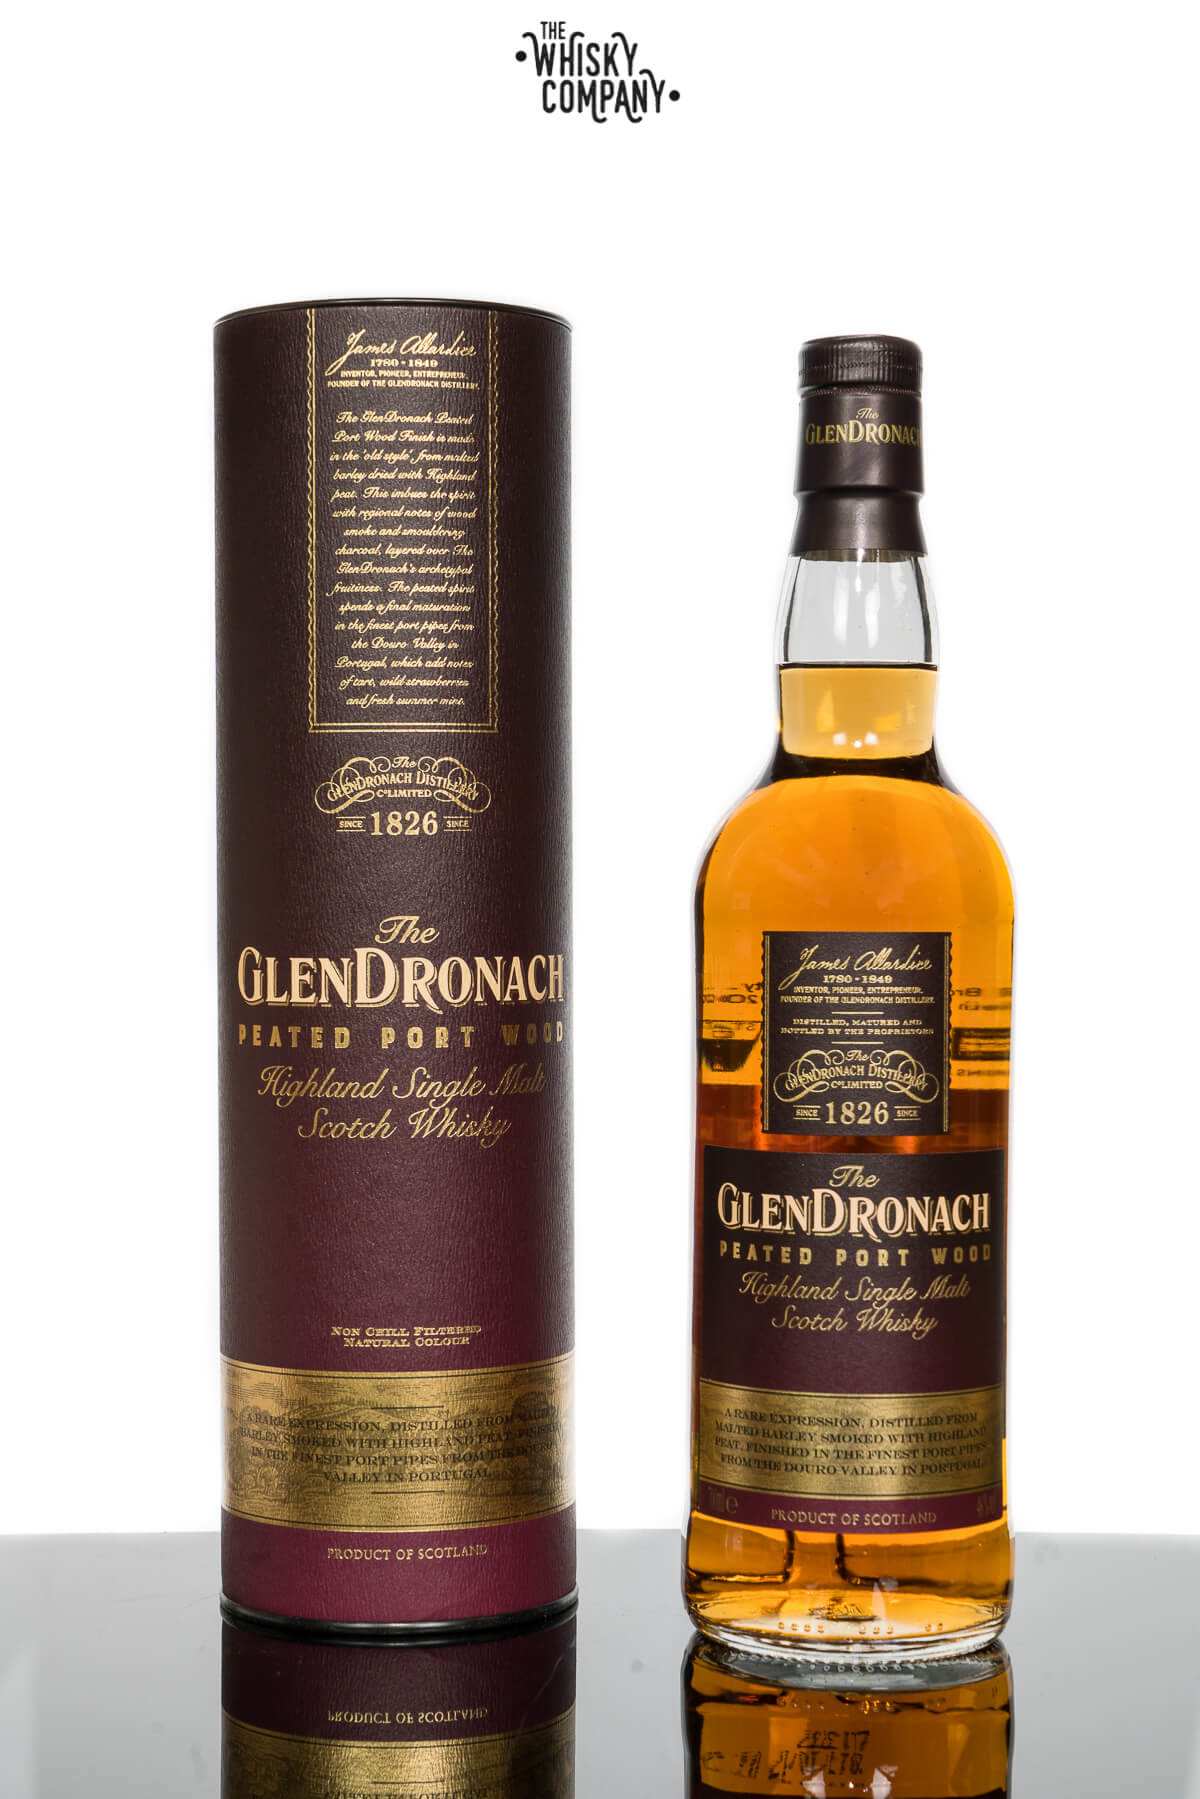 GlenDronach Peated Port Wood Highland Single Malt Scotch Whisky (700ml)